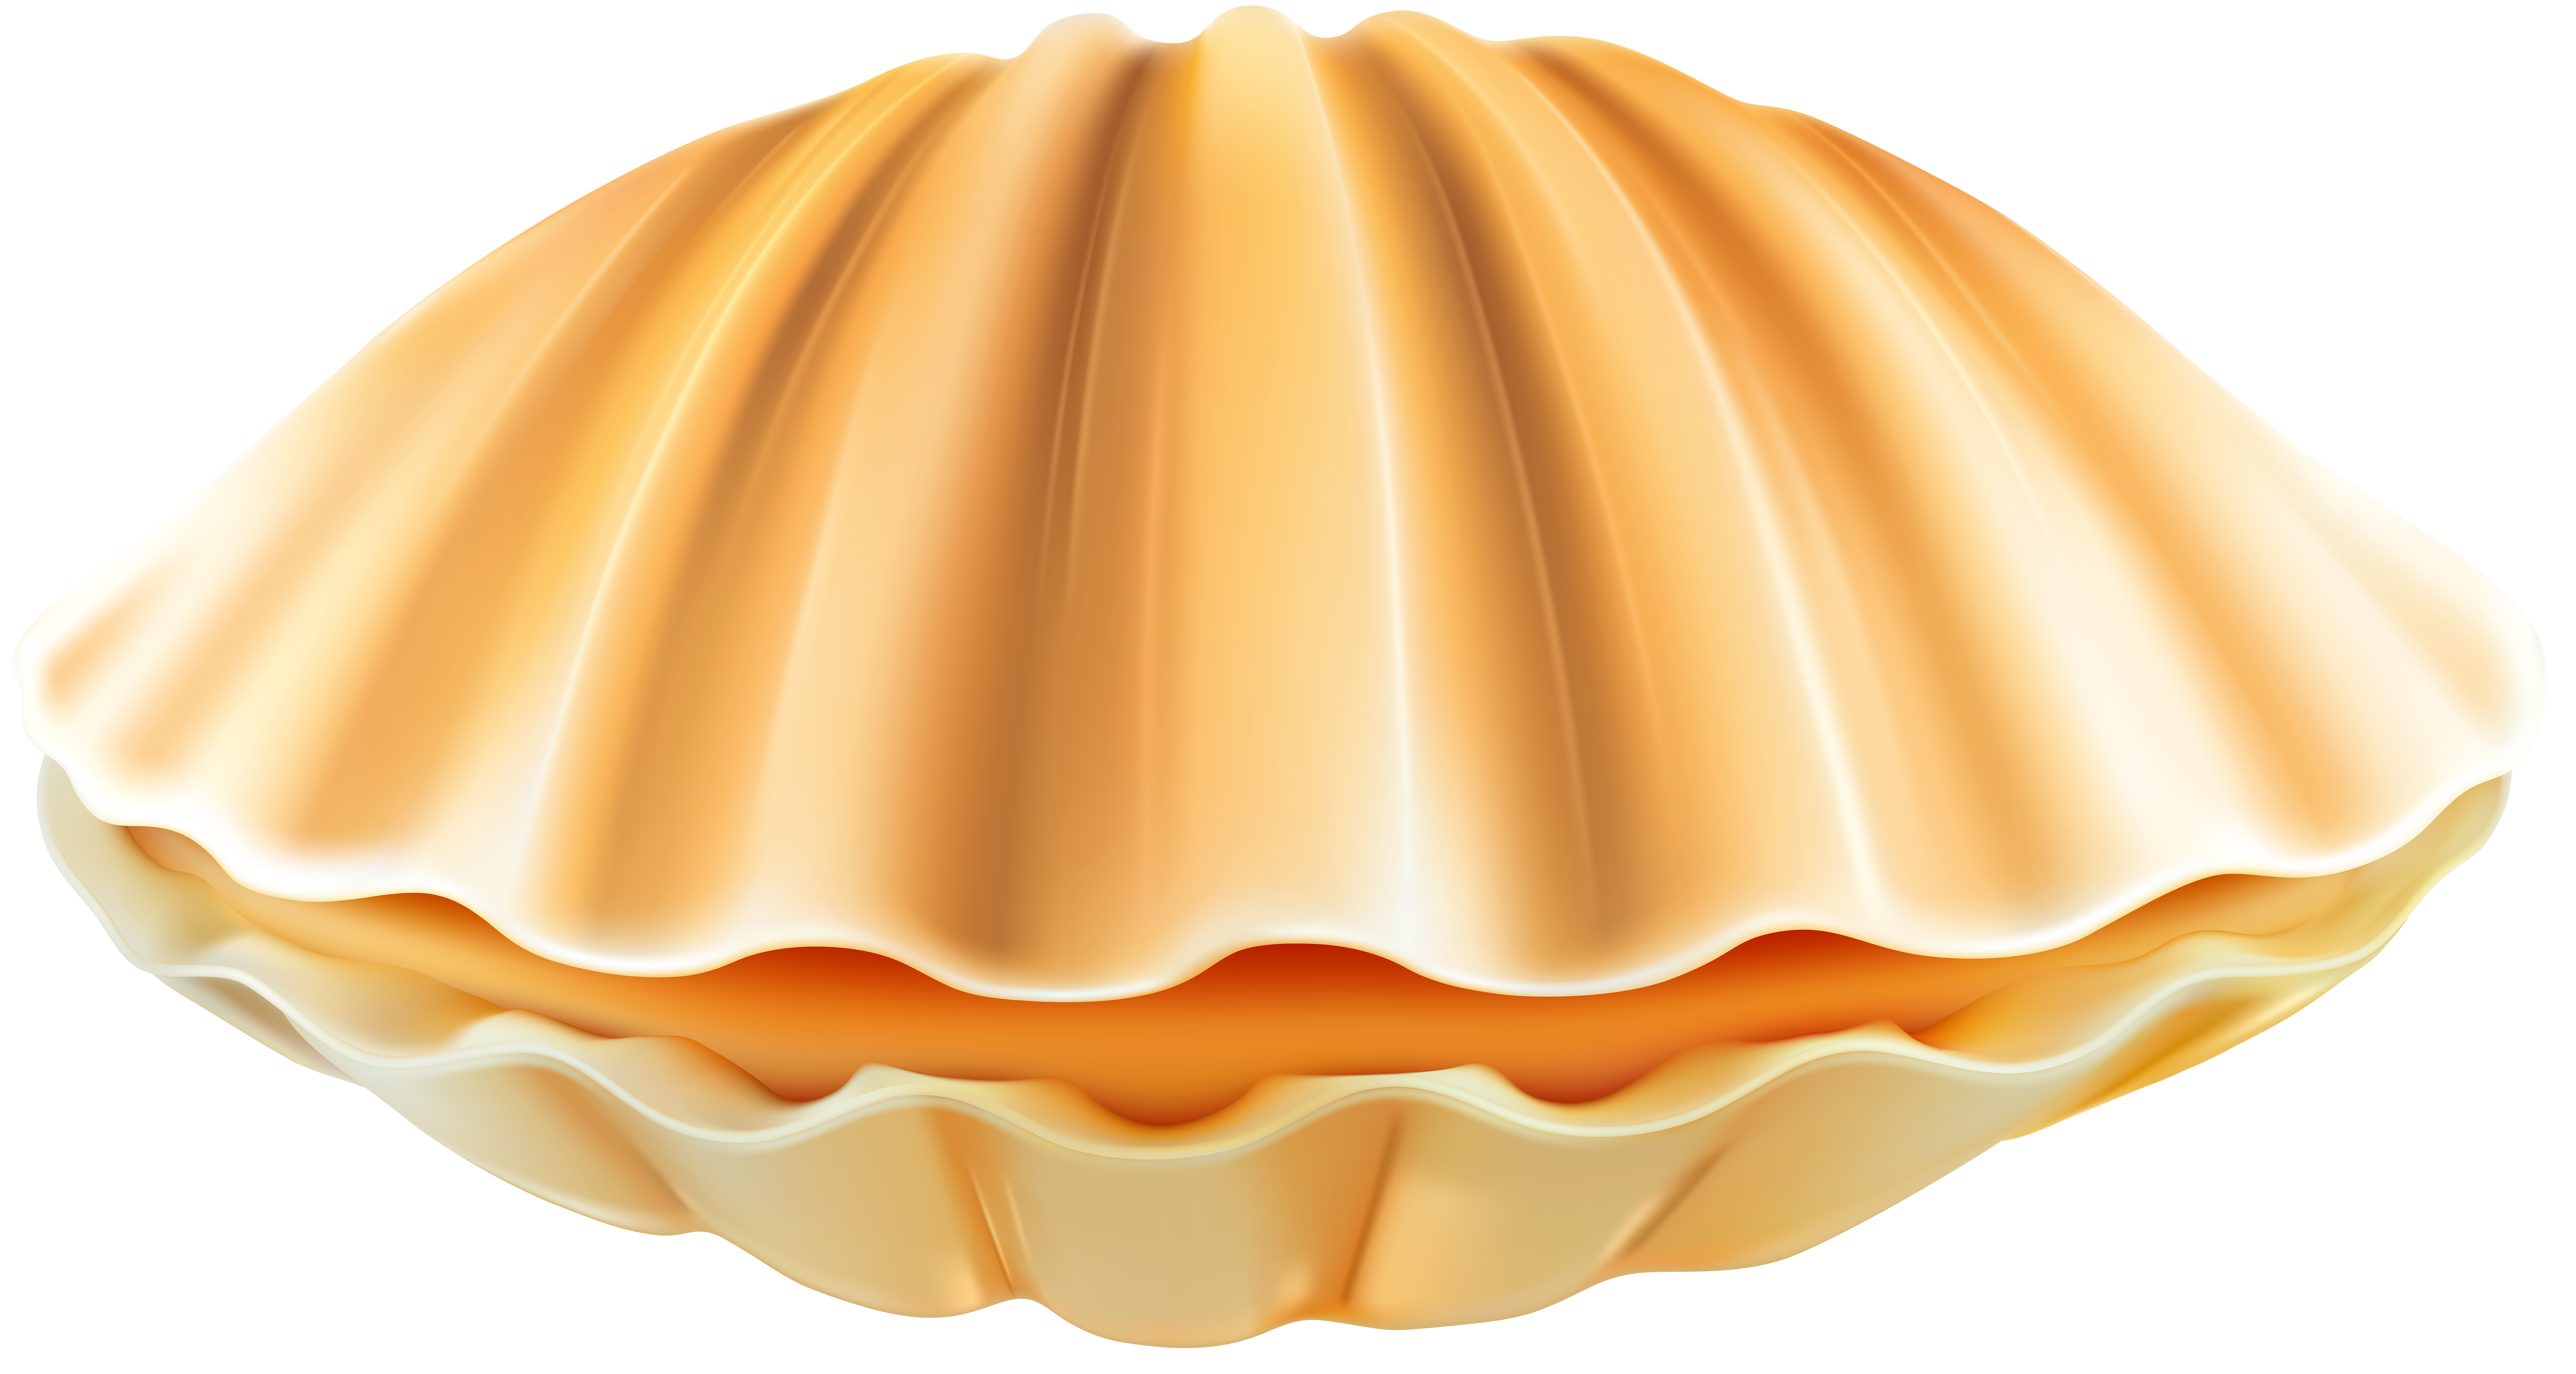 Clam Shell PNG Clip Art Transparent Image.